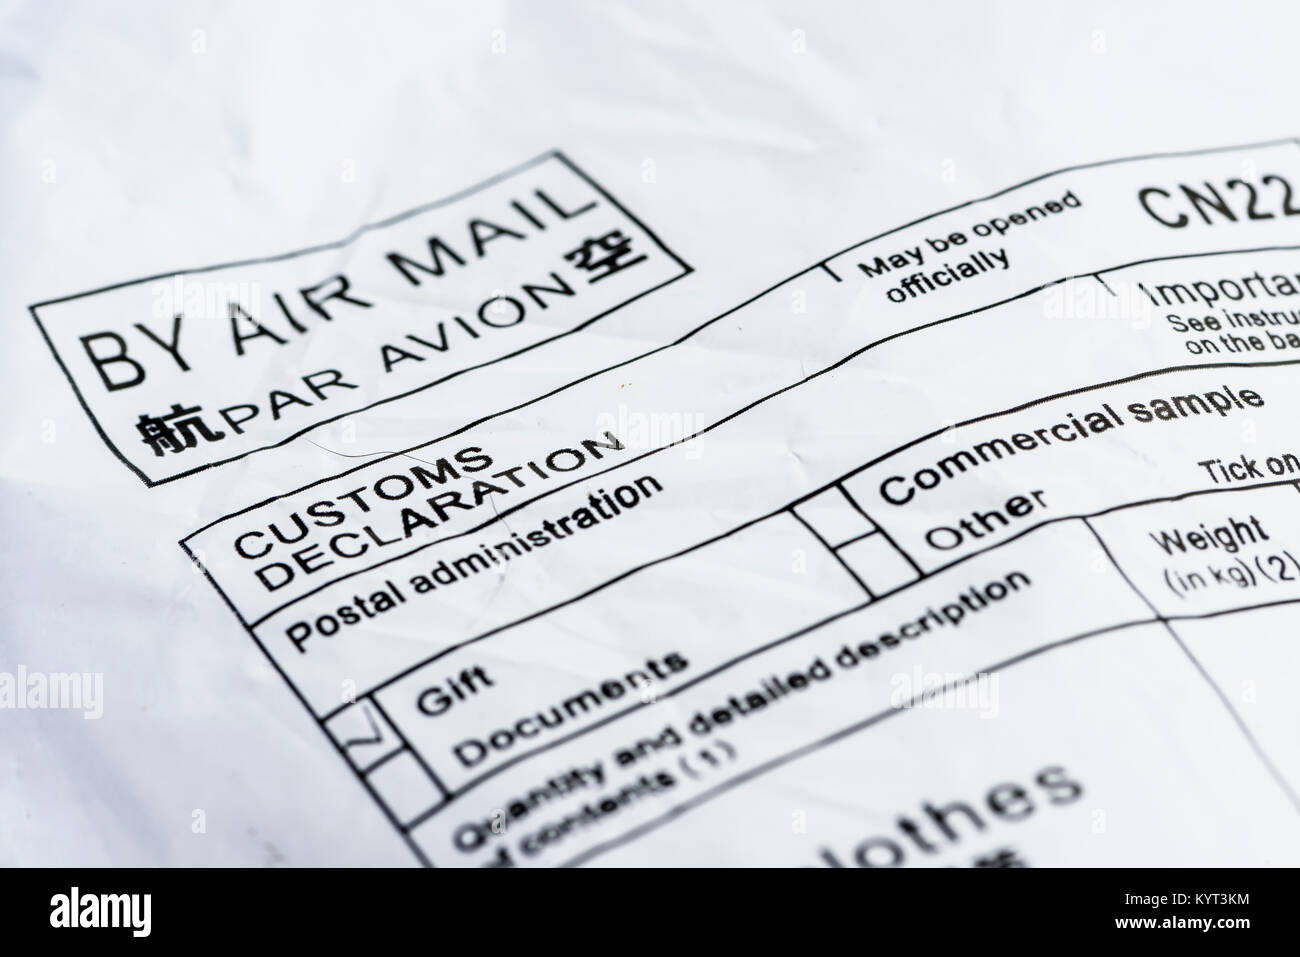 Air mail delivery lable from China Post - Stock Image